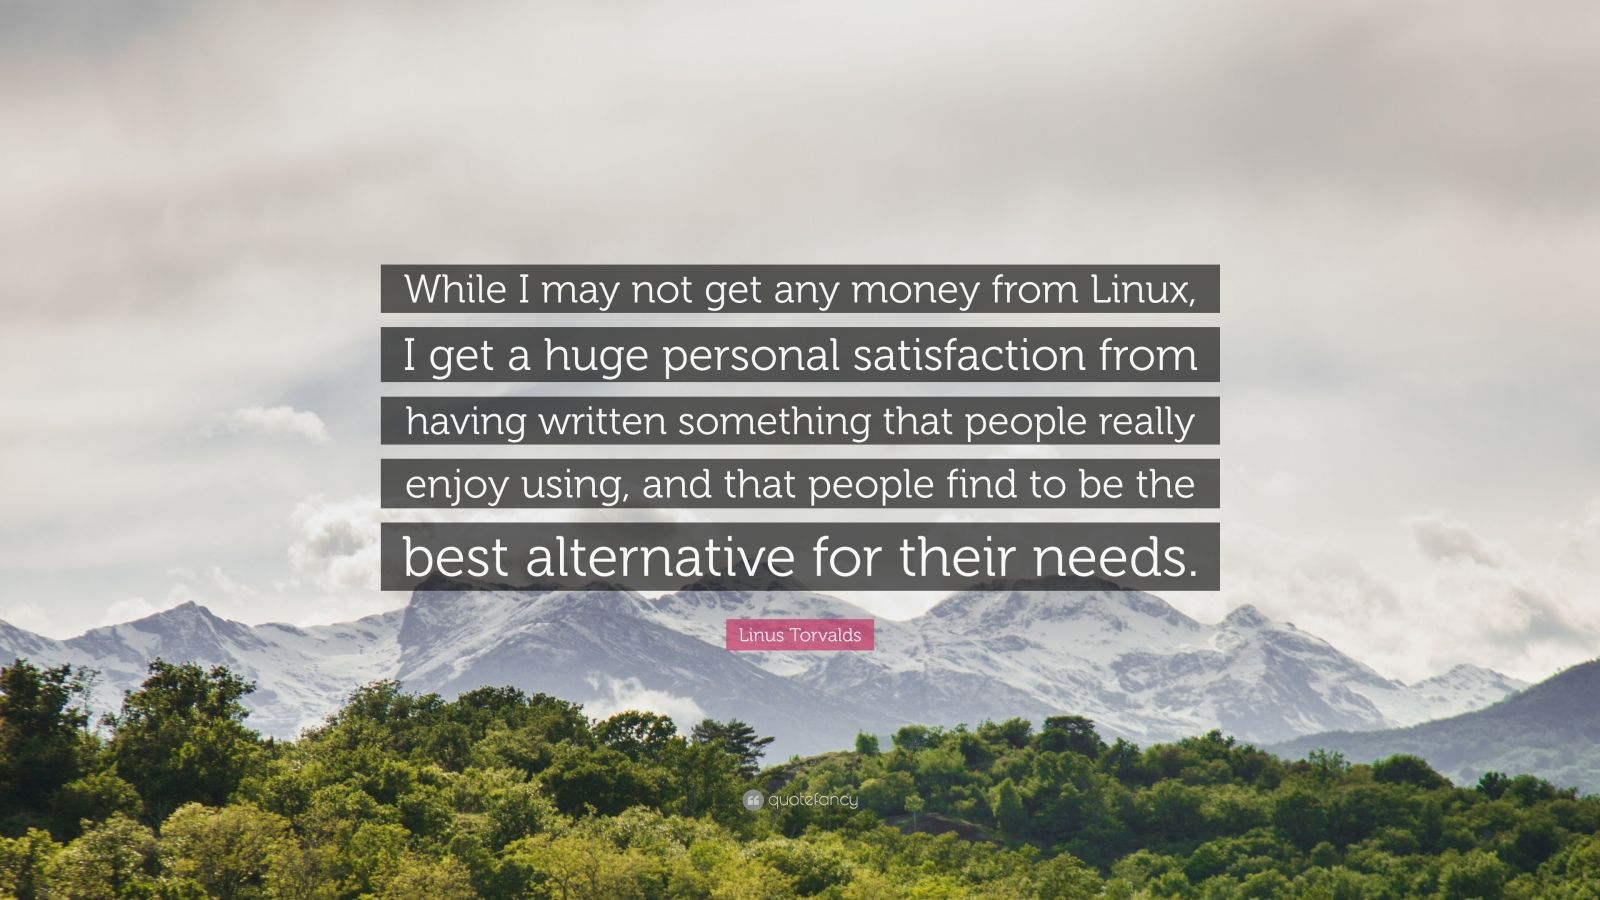 """Linus Torvalds Quote: """"While I may not get any money from Linux, I get a huge personal satisfaction from having written something that people really enjoy using, and that people find to be the best alternative for their needs."""""""